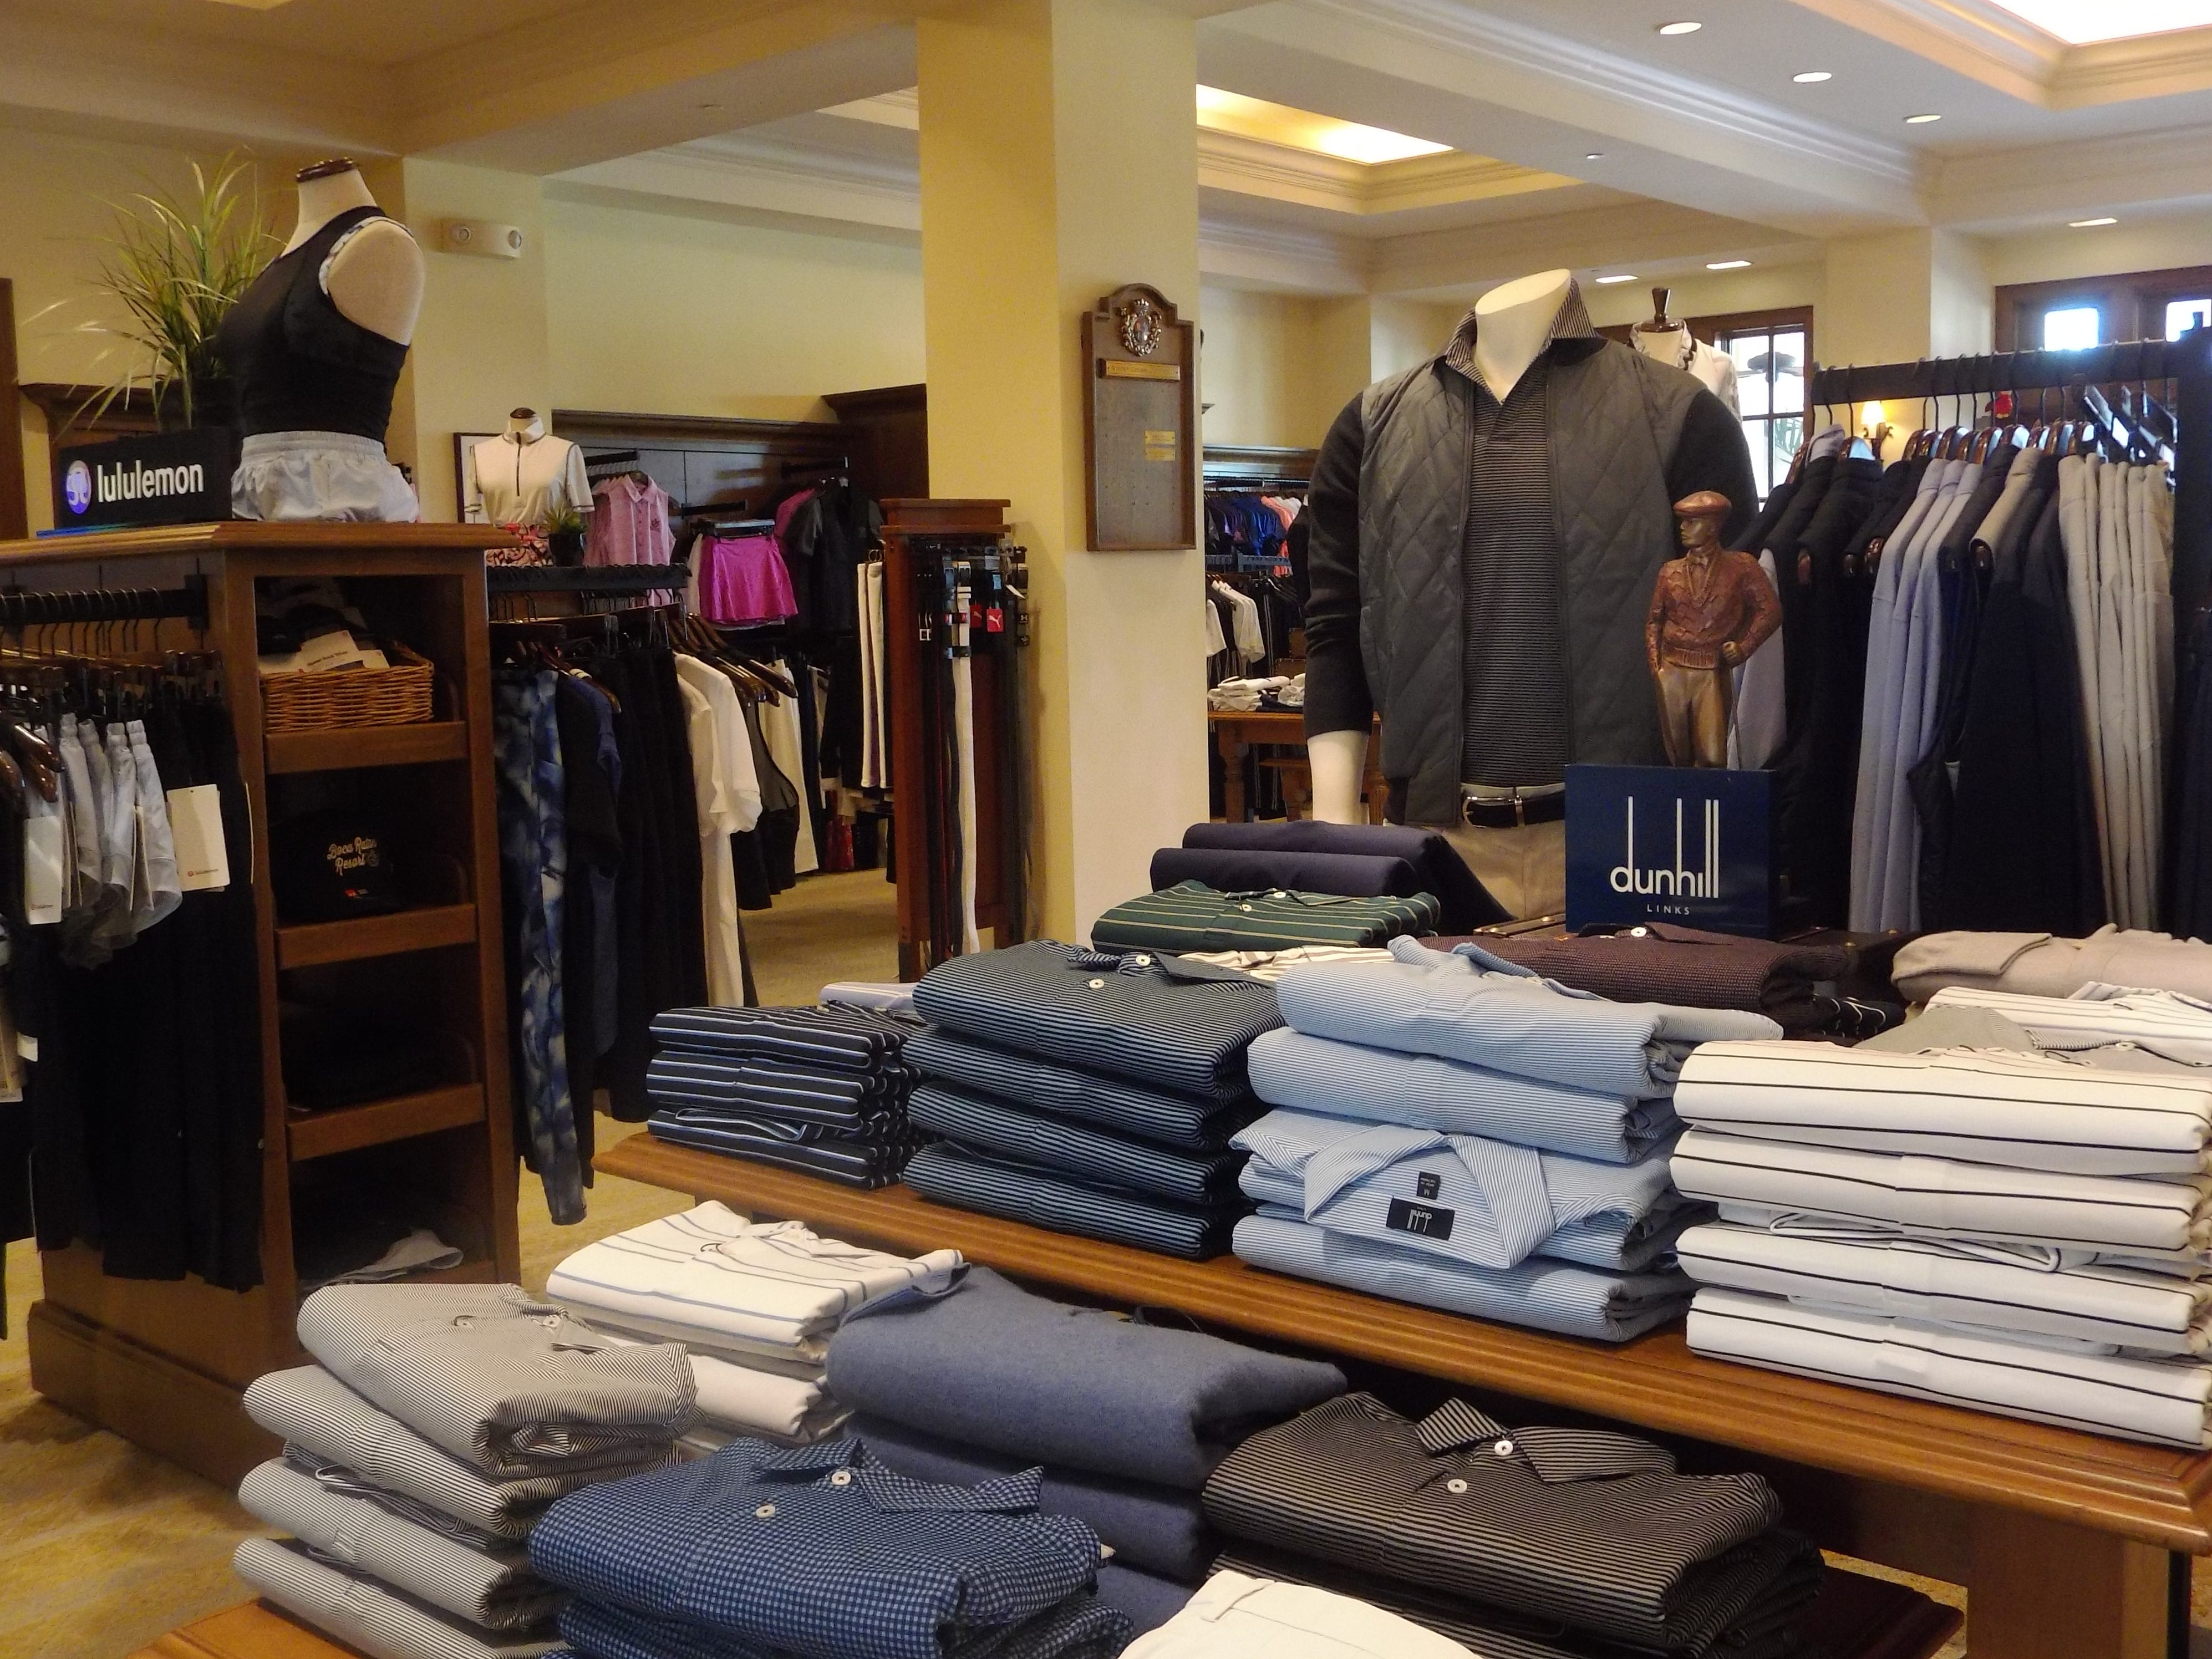 Find all the golfing gear you need, and more, at the Golf Pro Shop at Boca Raton Resort & Club.